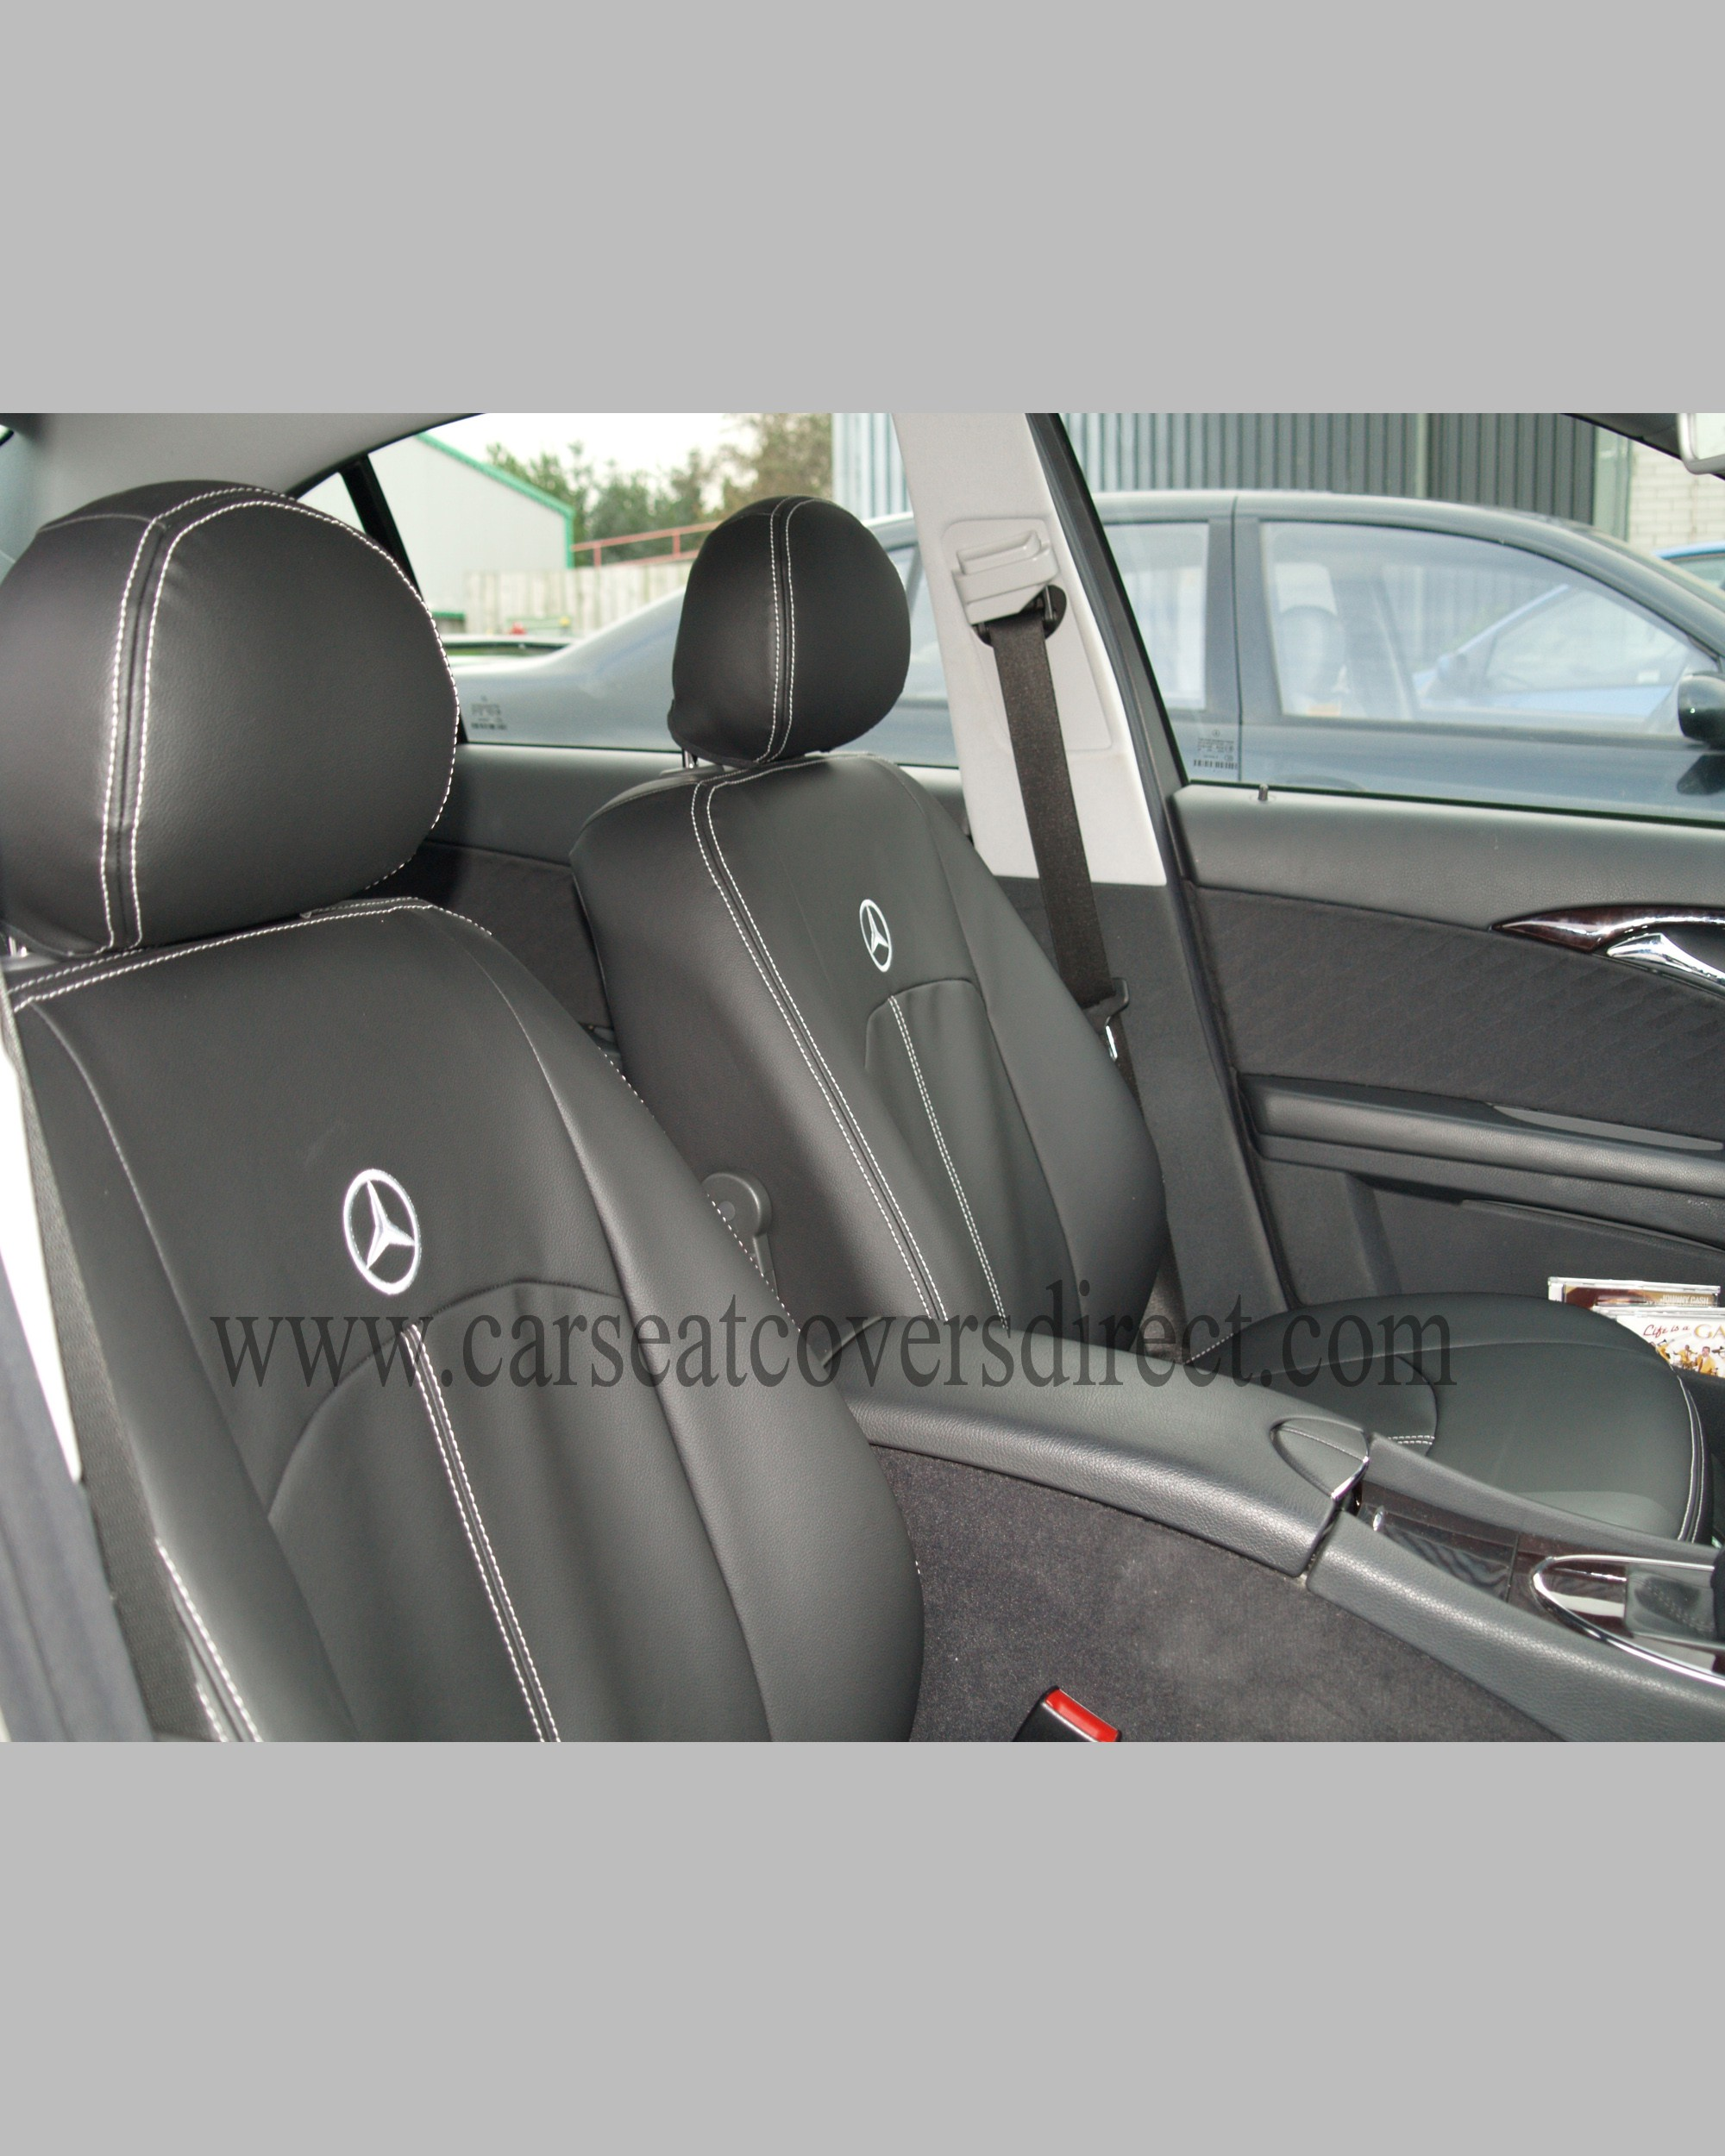 Mercedes e class w211 seat covers car seat covers direct for Mercedes benz e350 car cover